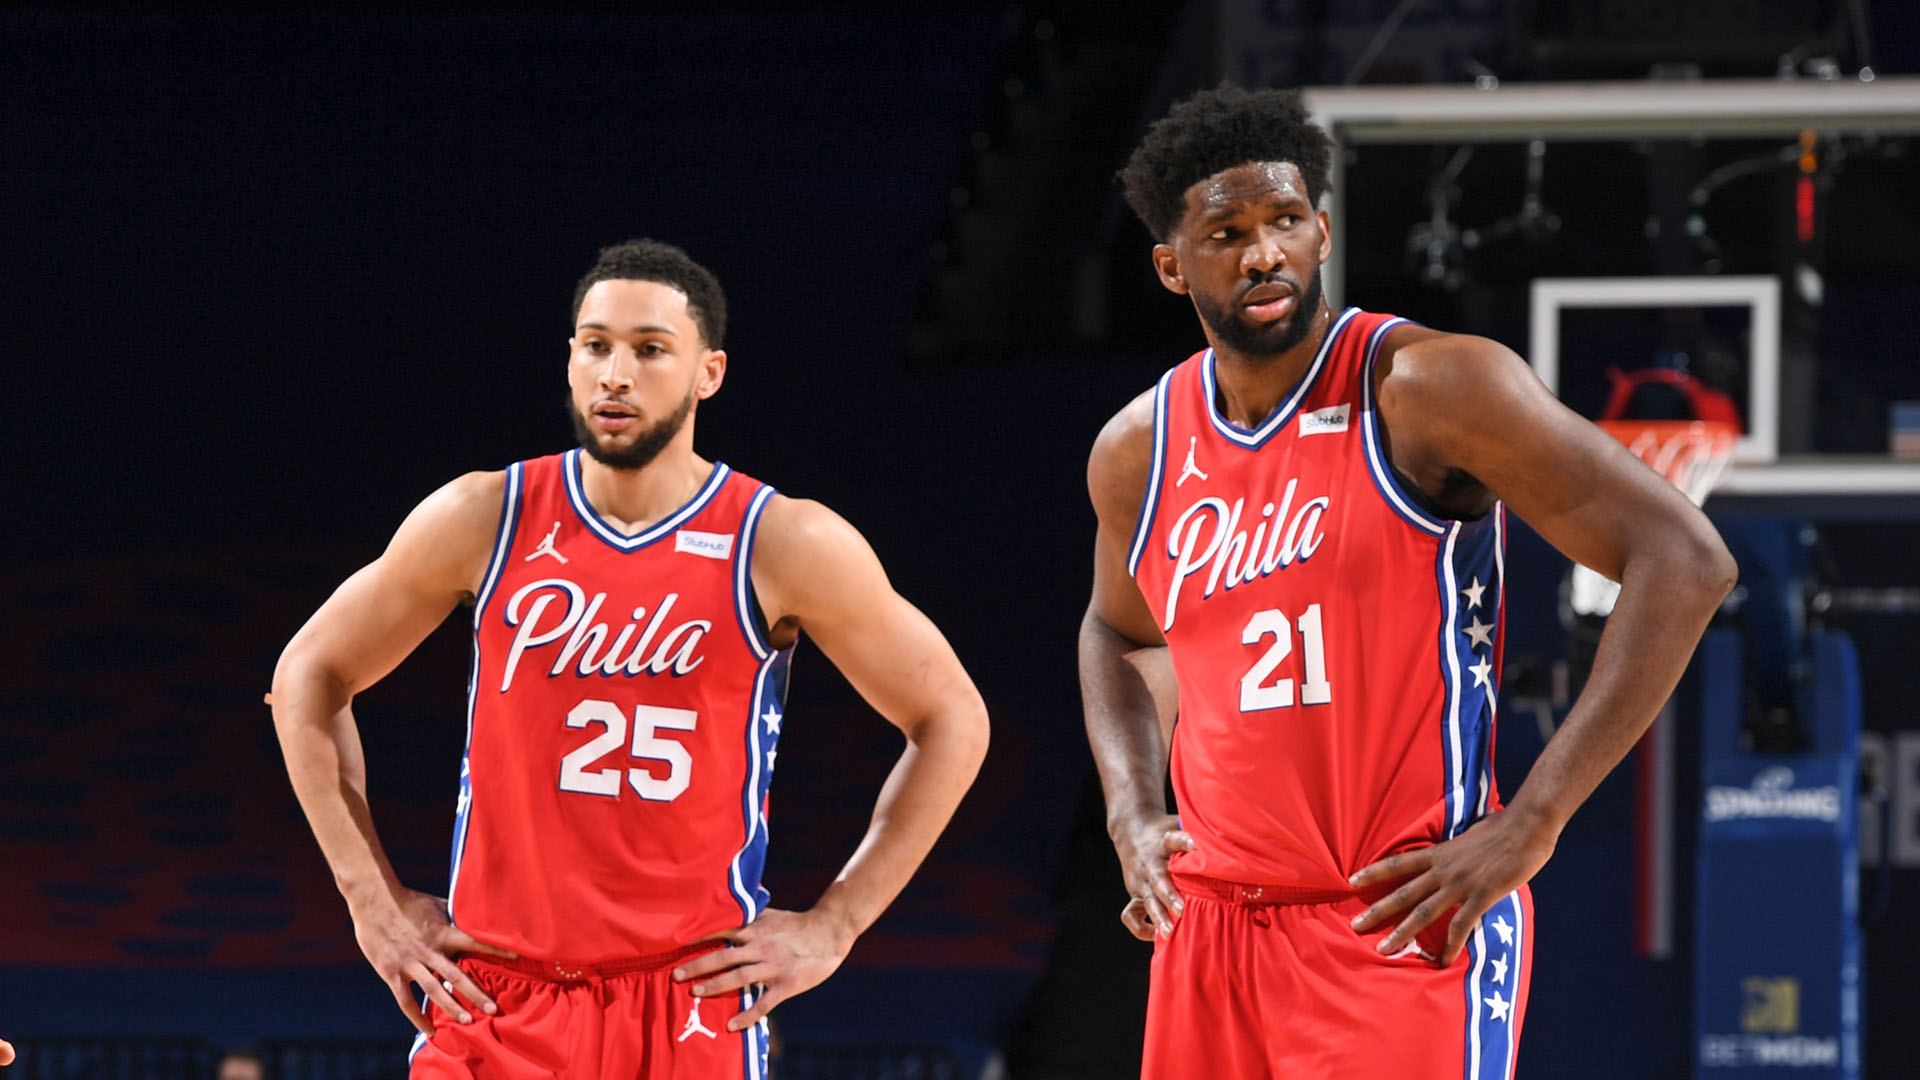 Are the 76ers the team to beat in the East?